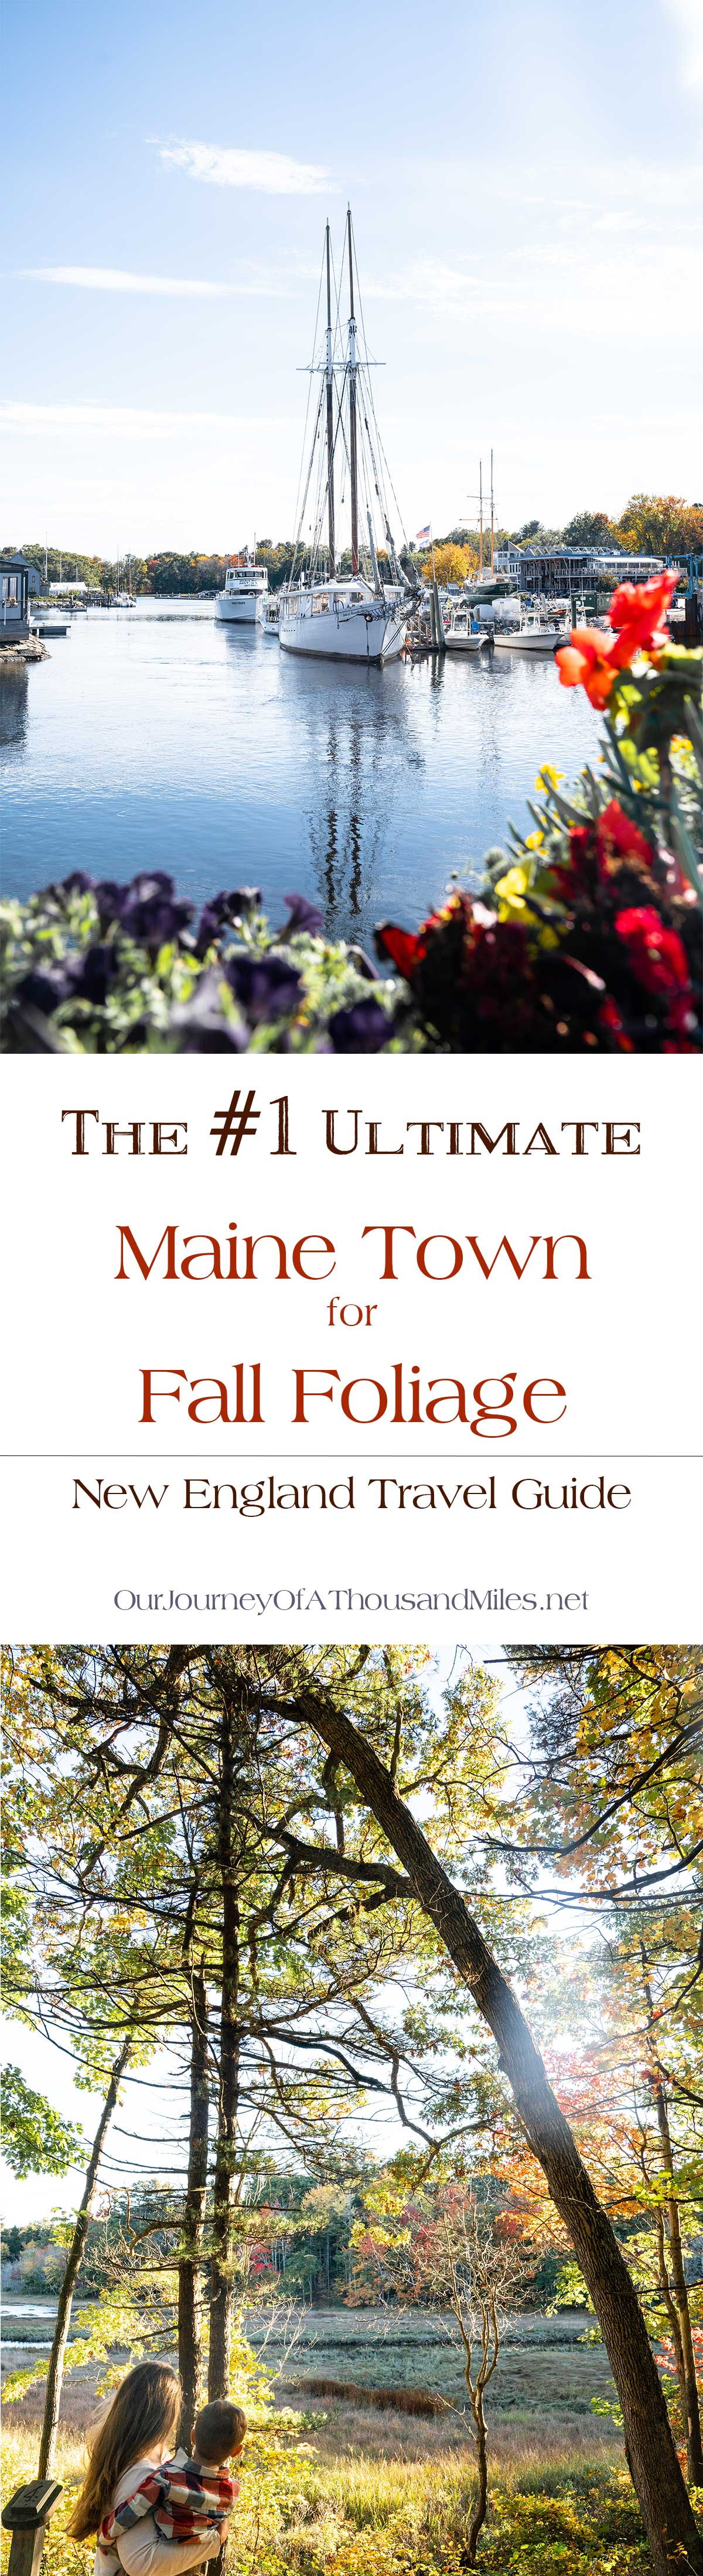 The-Number-One-Ultimate-Maine-Town-For-Fall-Foliage-New-England-Travel-Guide